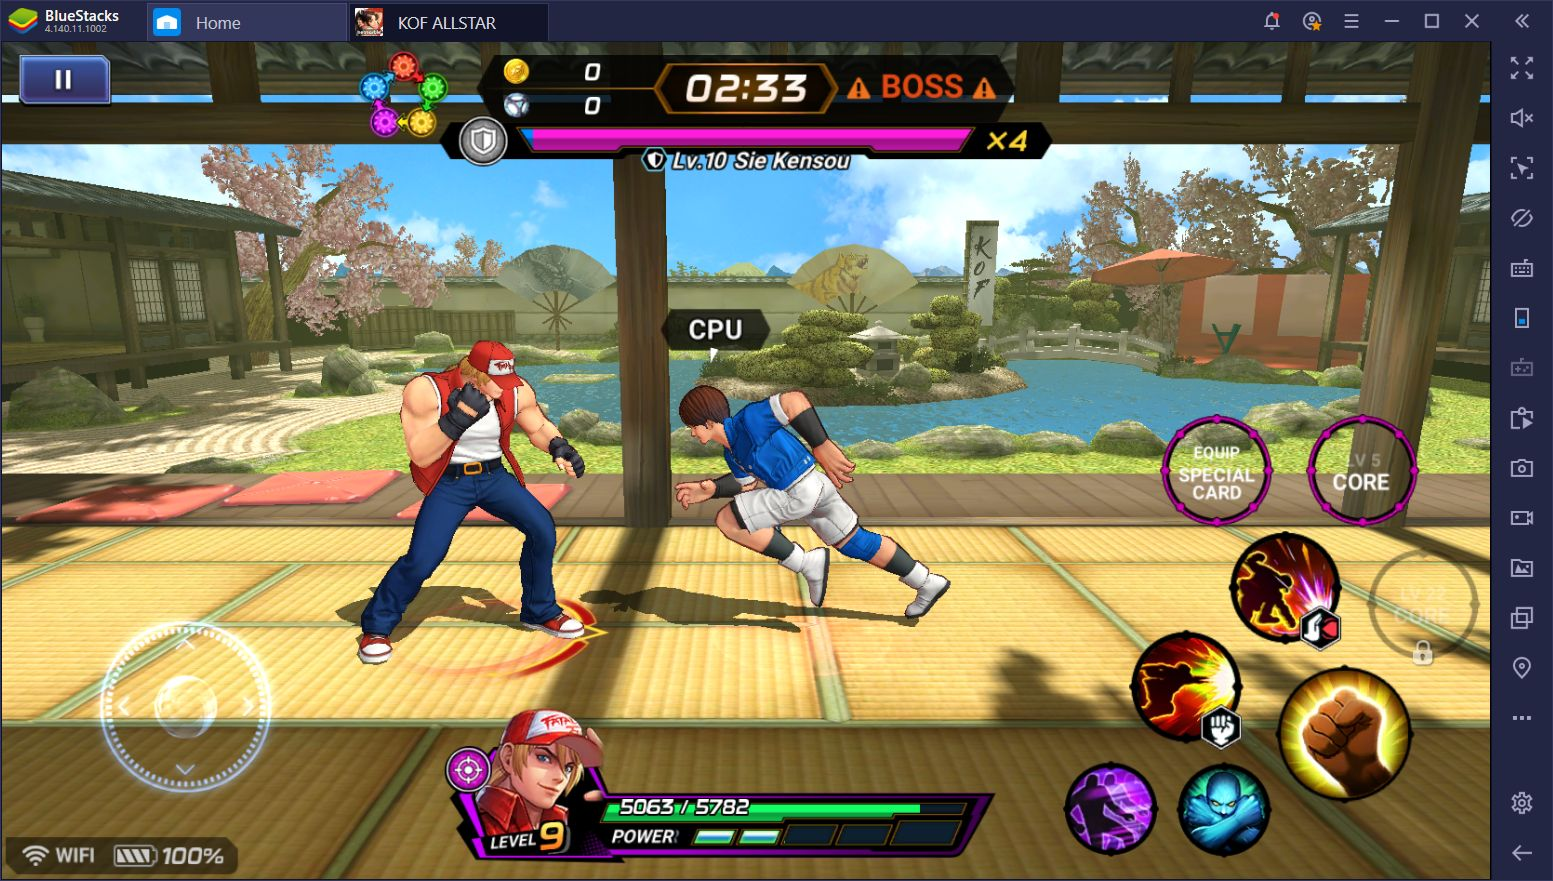 Kick Butts in King of Fighters ALLSTAR on PC With These Combat Tips